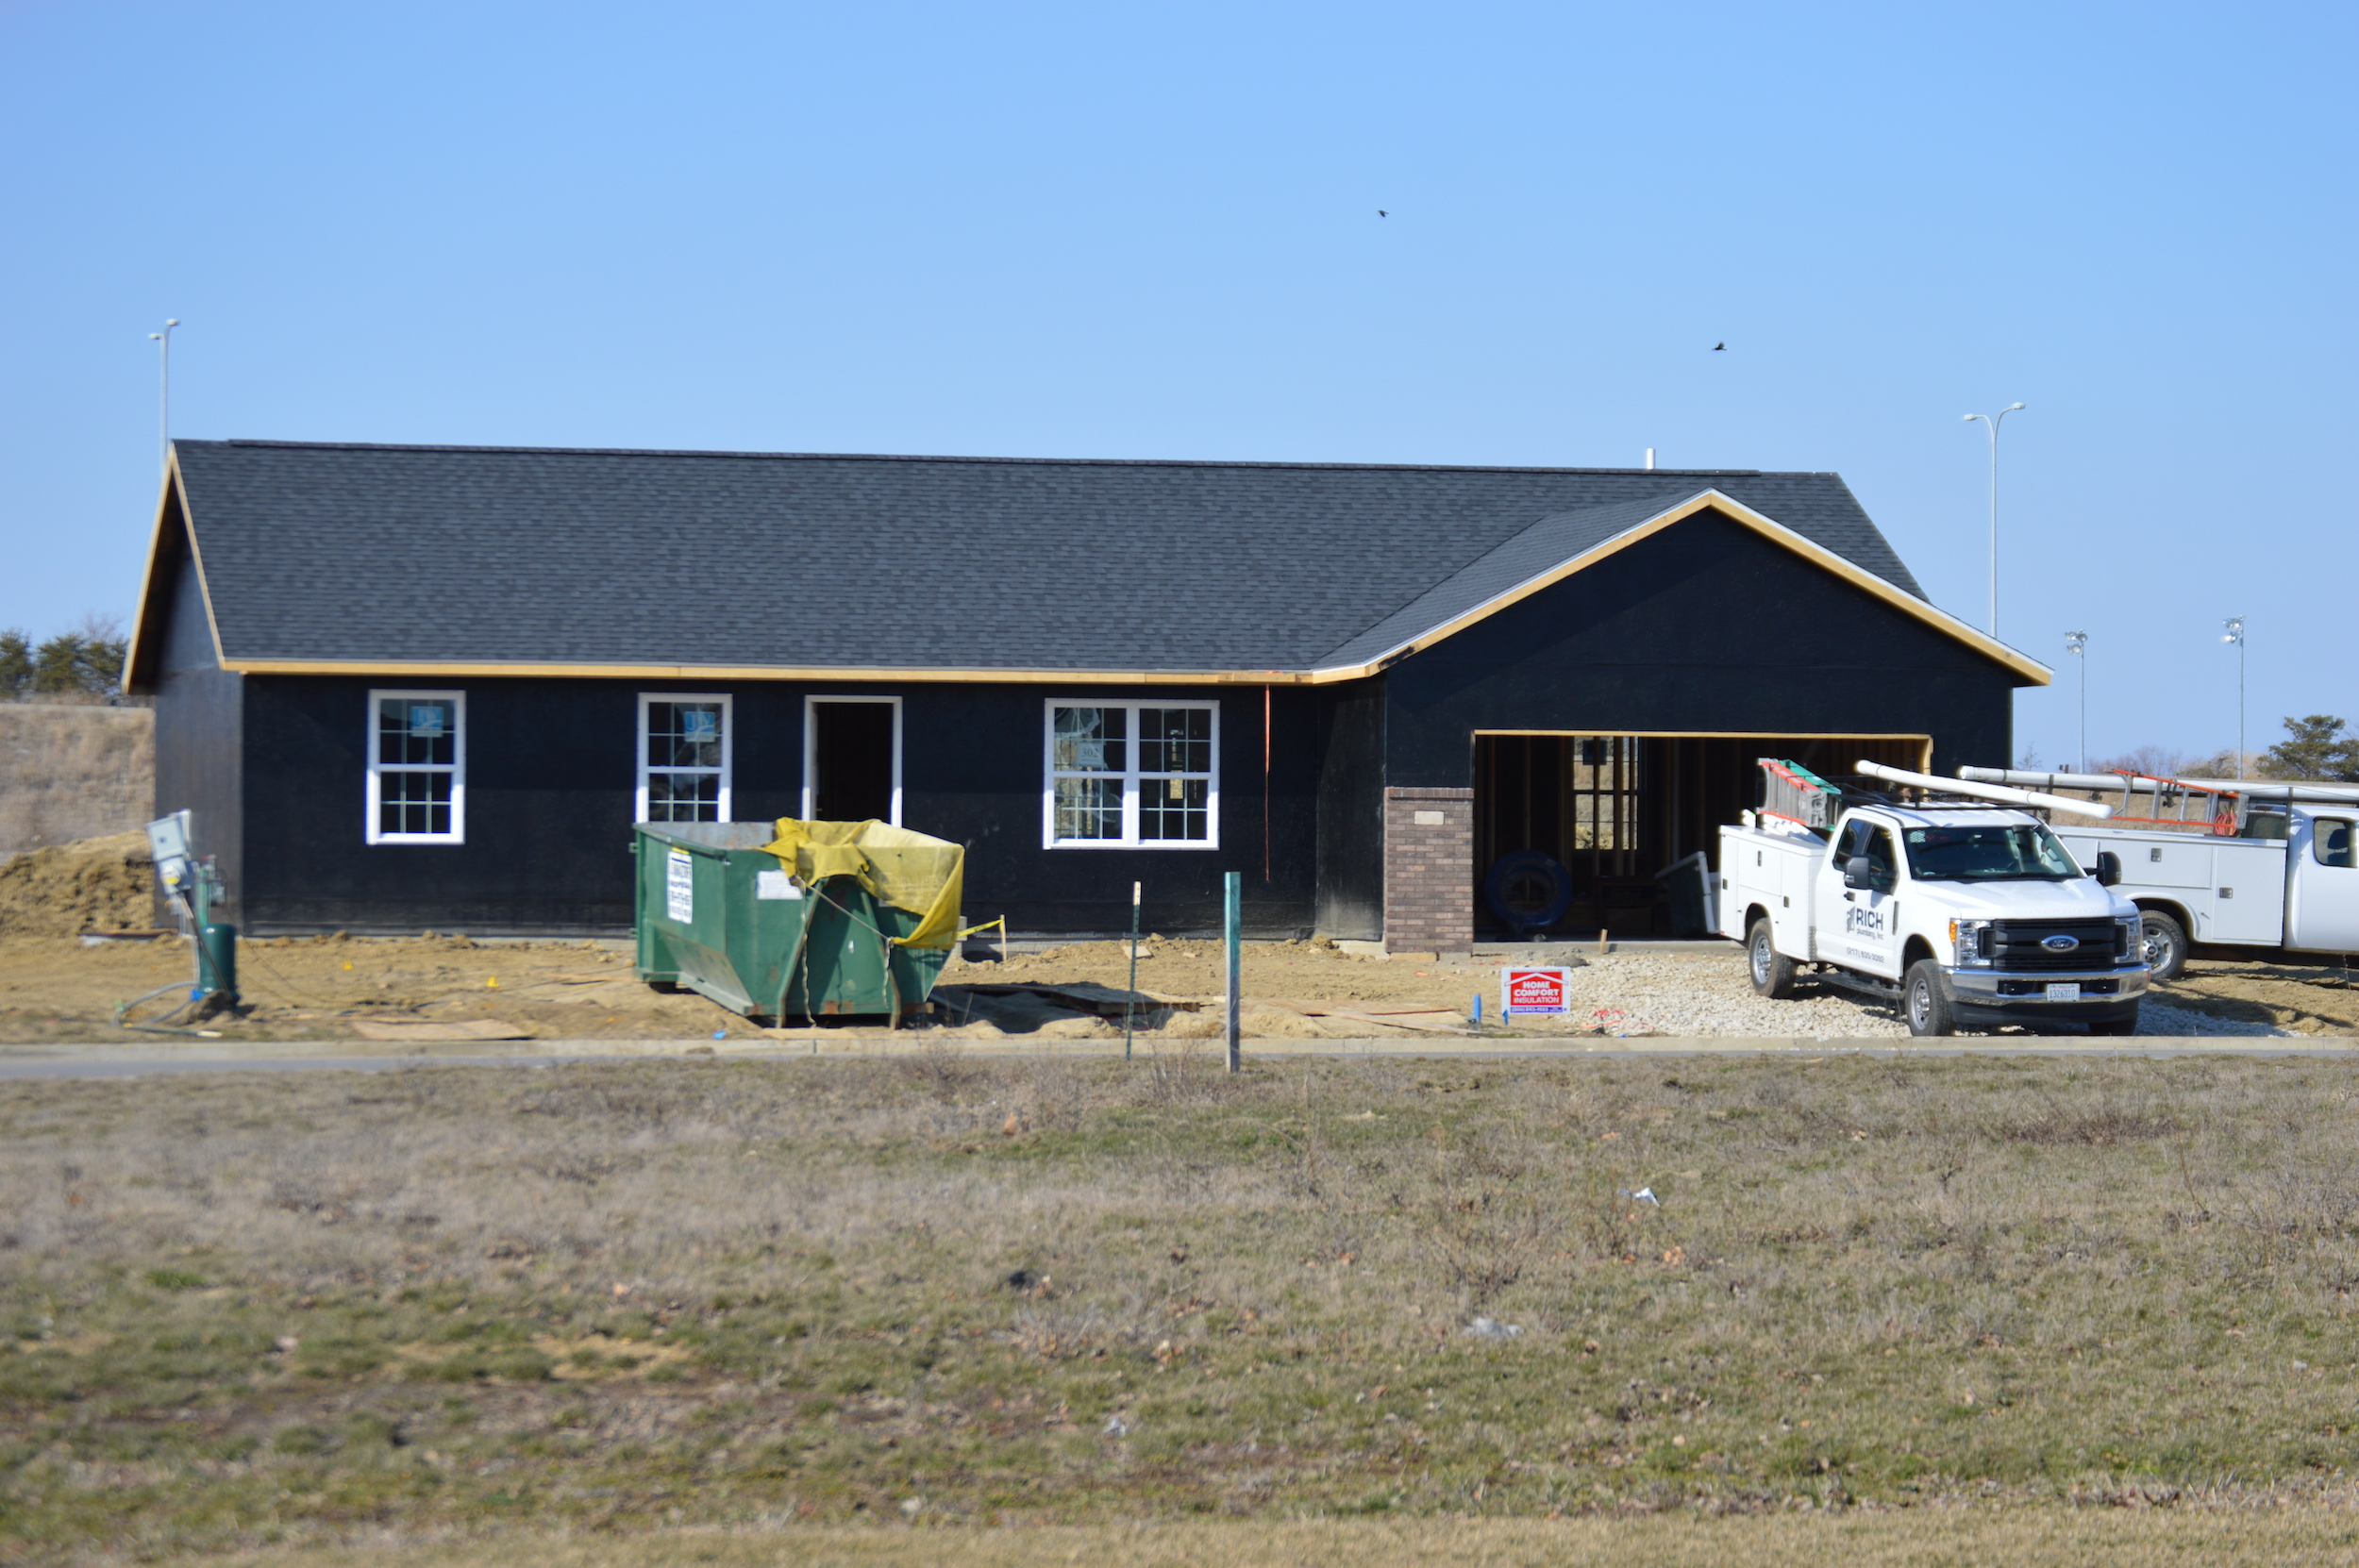 New construction home sales are down in Bloomington-Normal and across the nation as builders face challenges and buyers wait for more affordable options. (Image credit: Breanna Grow)